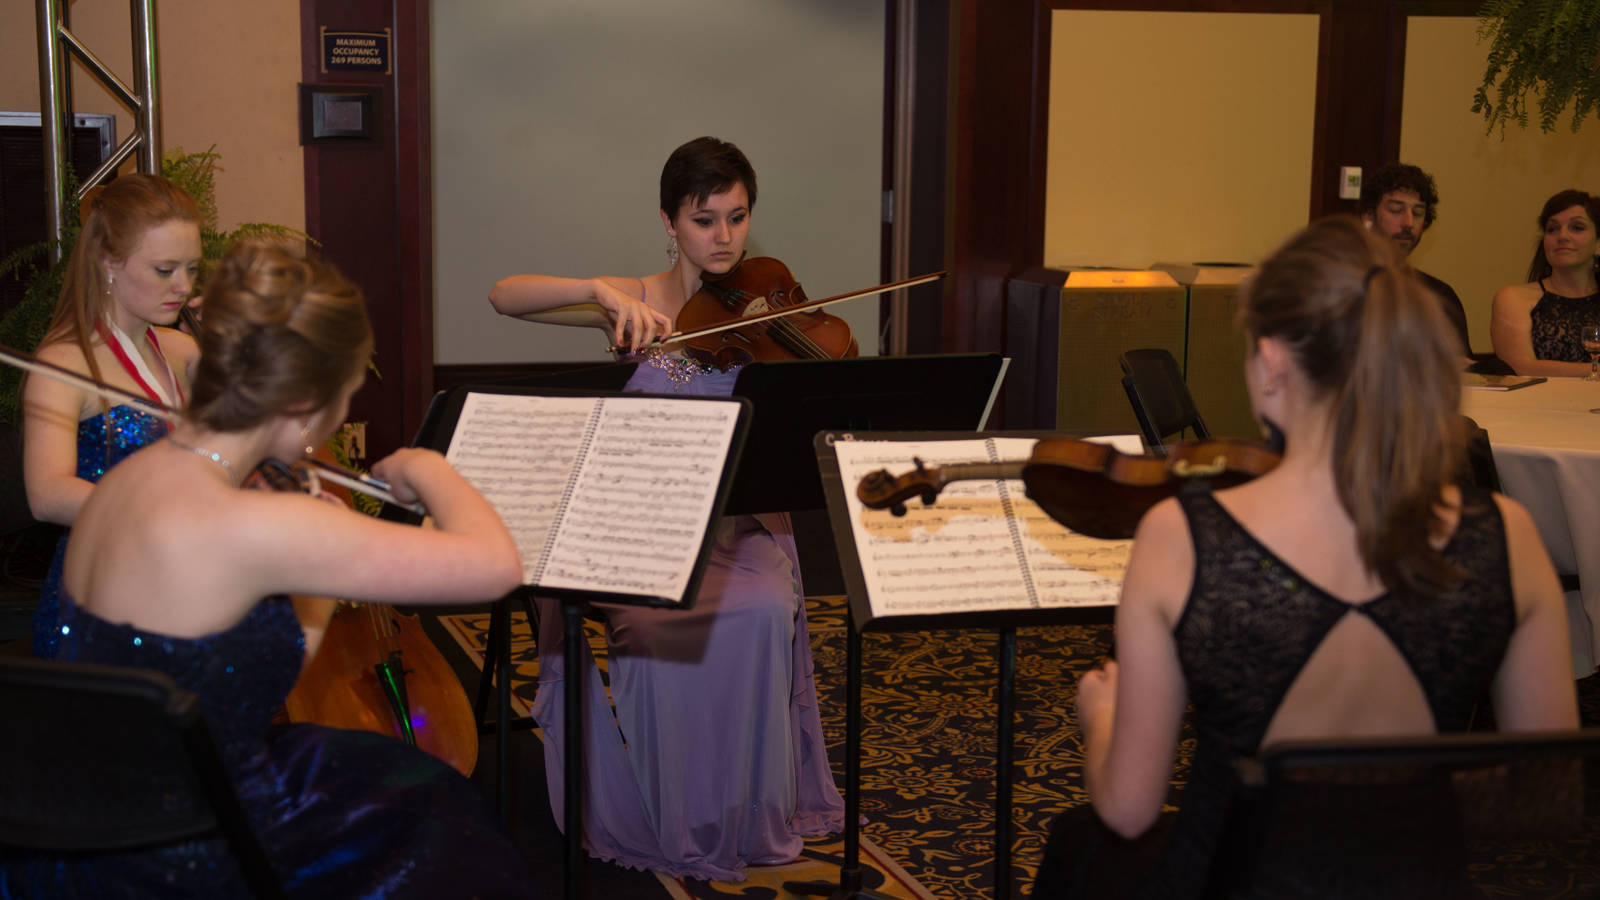 Musical ensemble playing at the Viennese Ball at UW-Eau Claire